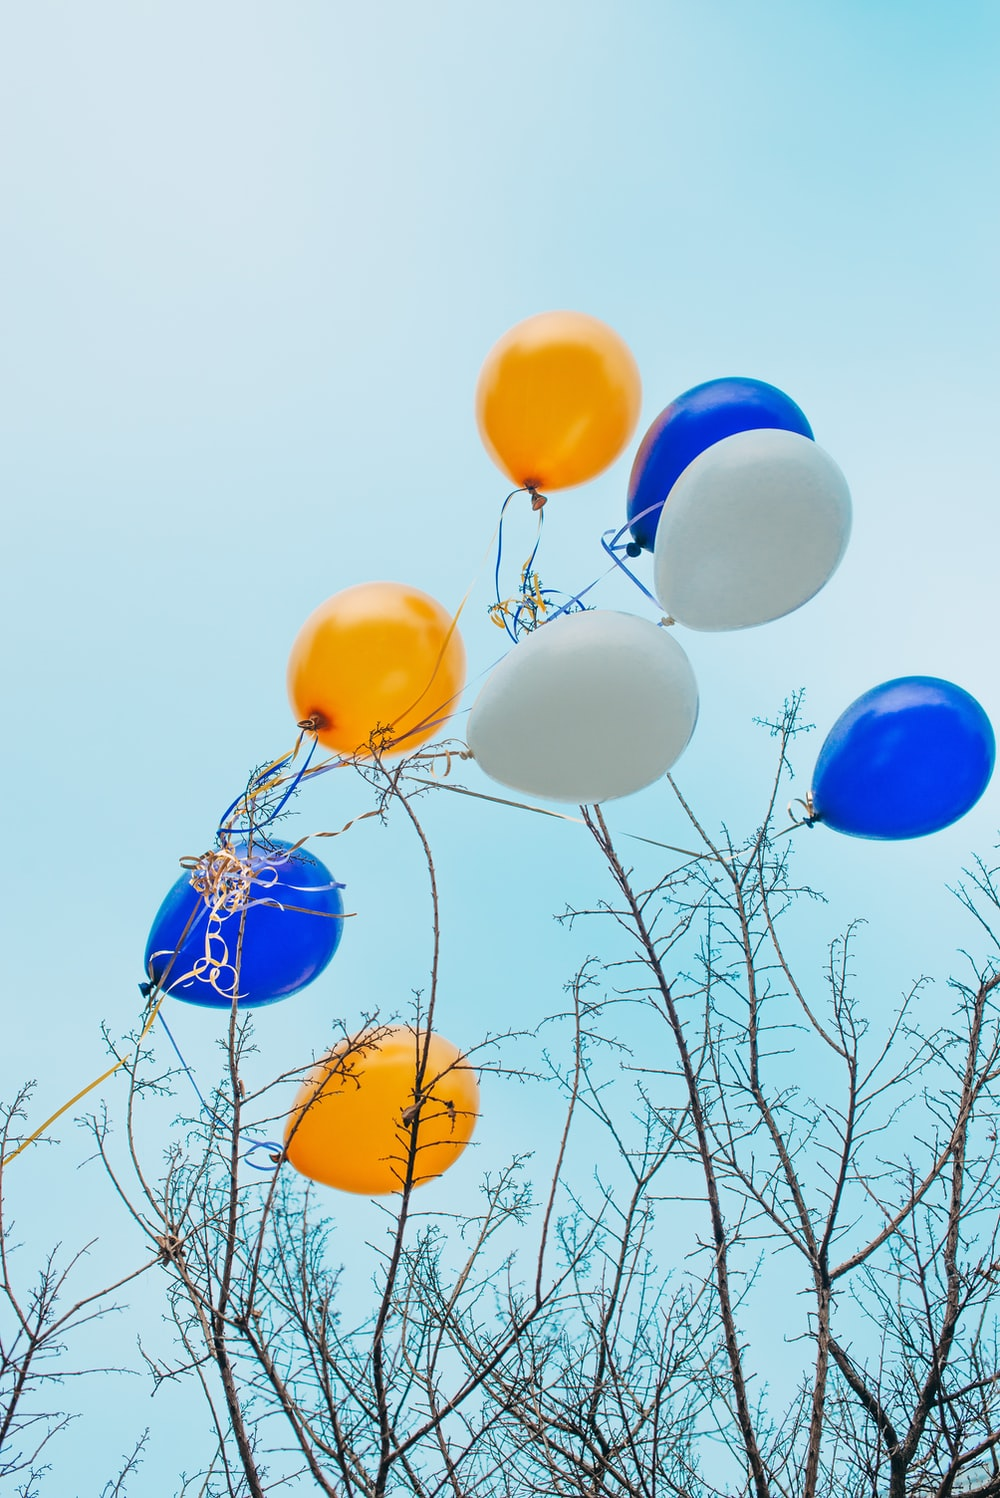 blue yellow and white balloons on bare tree during daytime